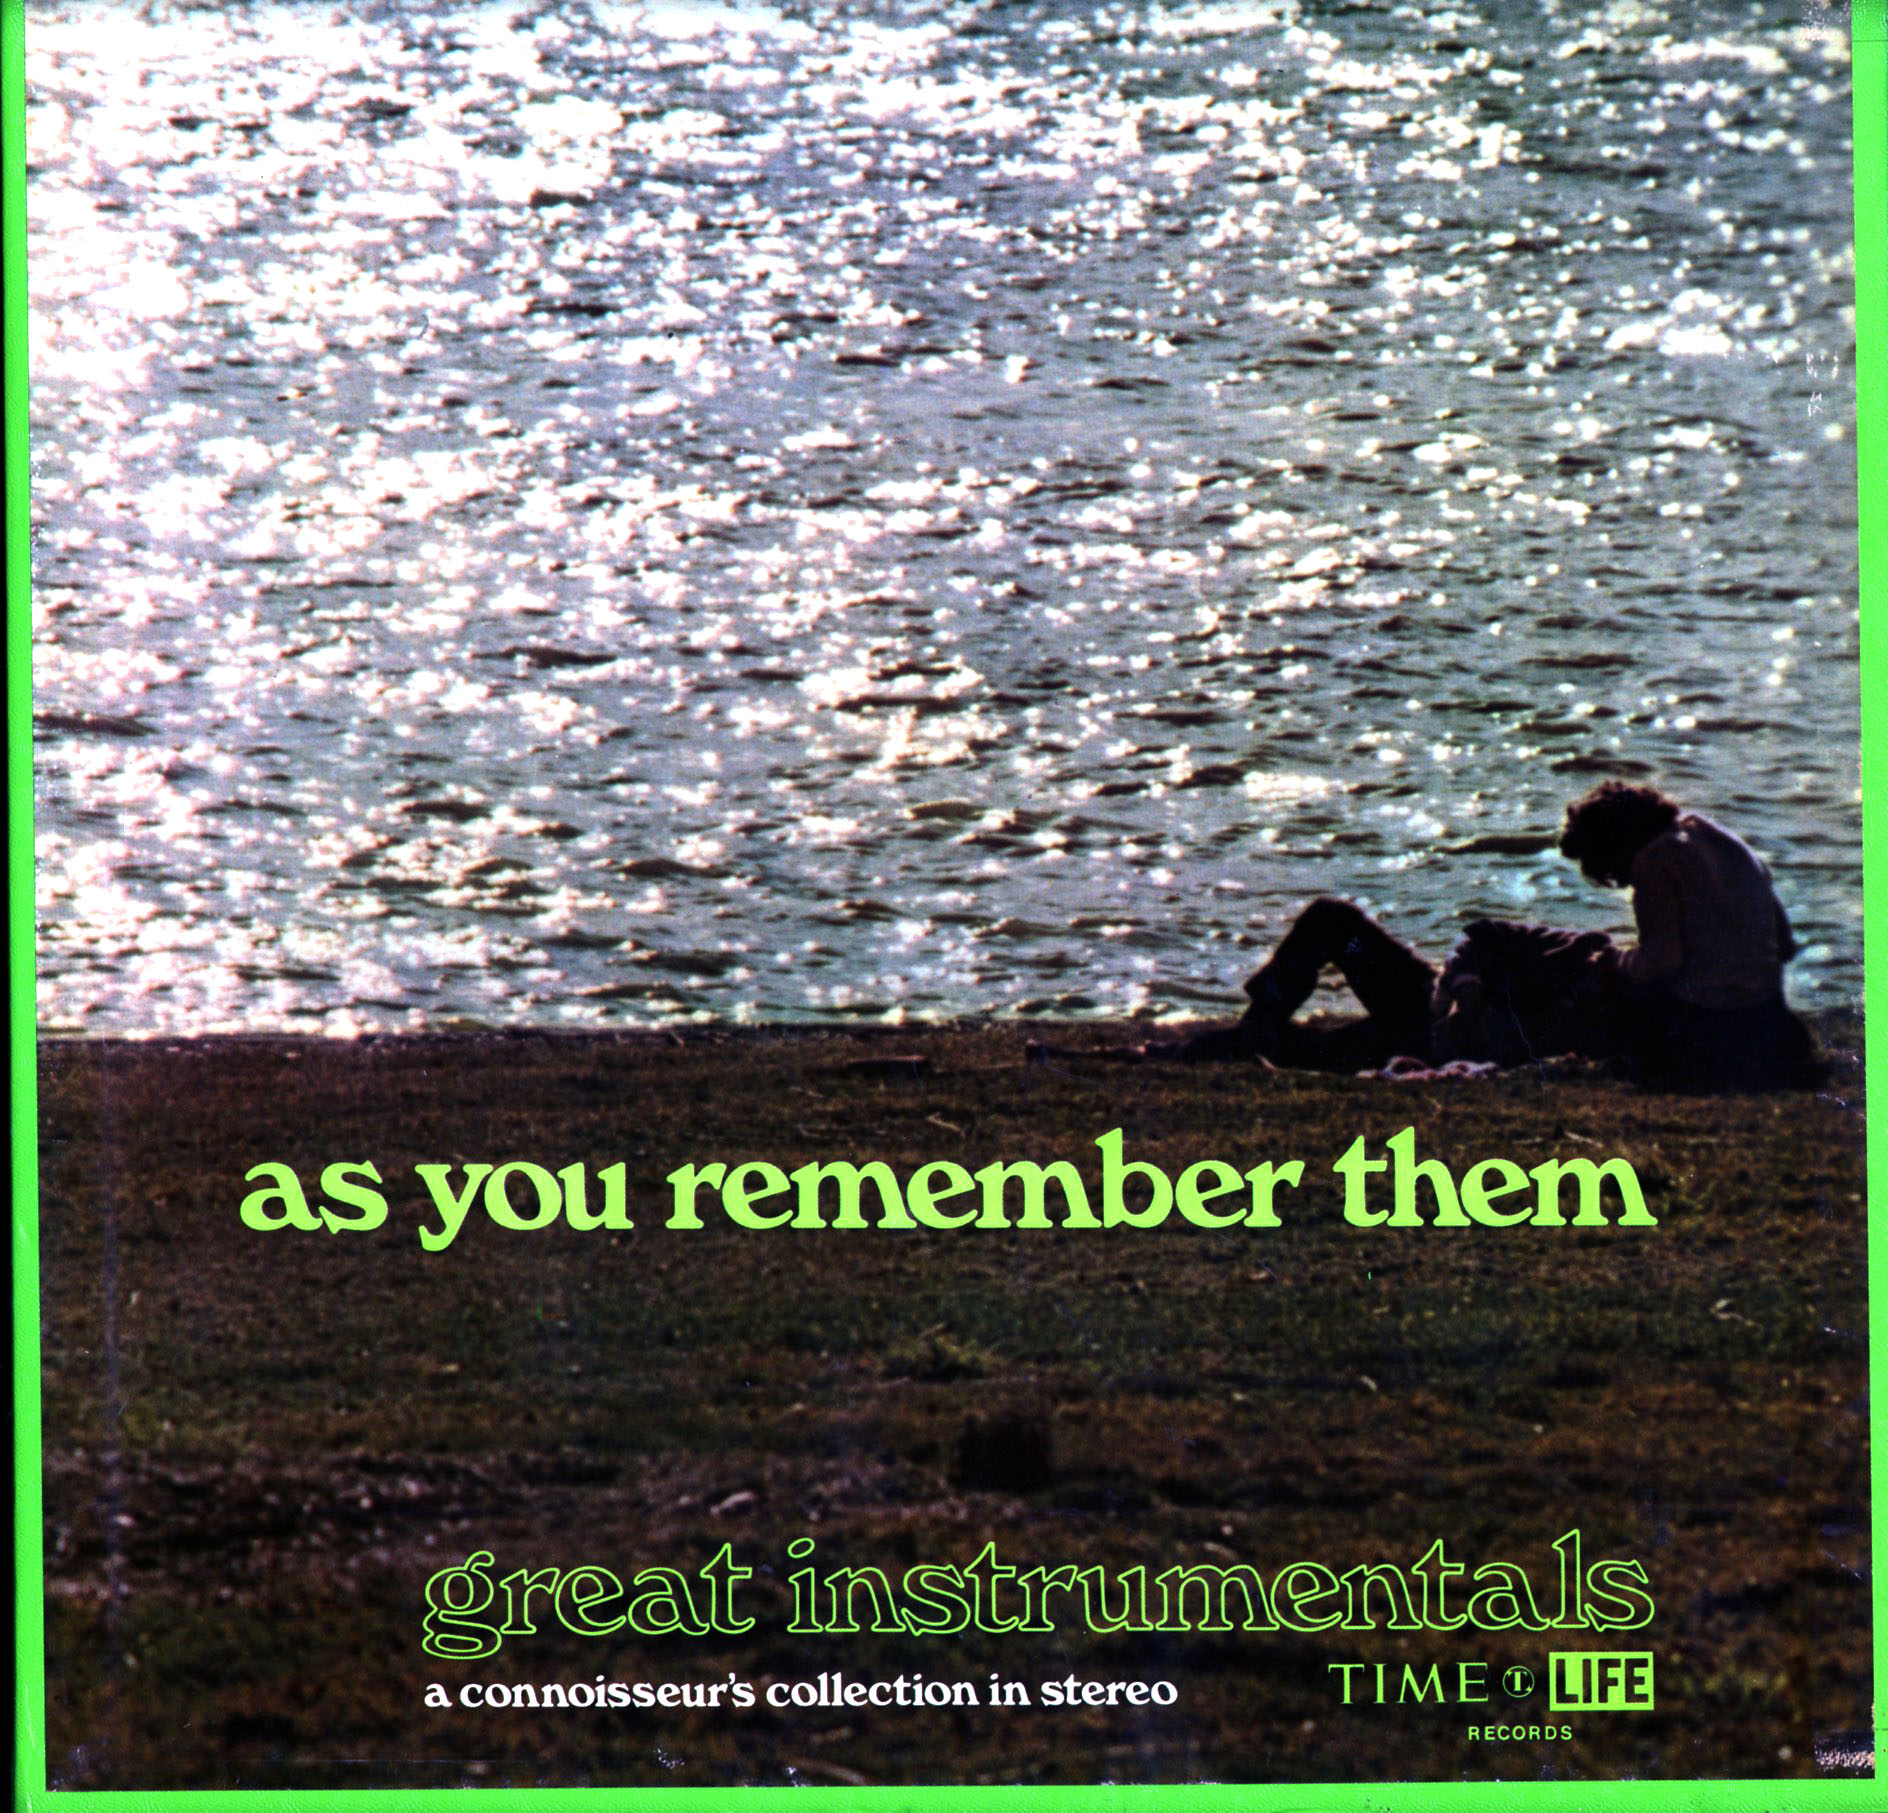 STL241 - As You Remember Them Great Instrumentals Volume 1 on CD